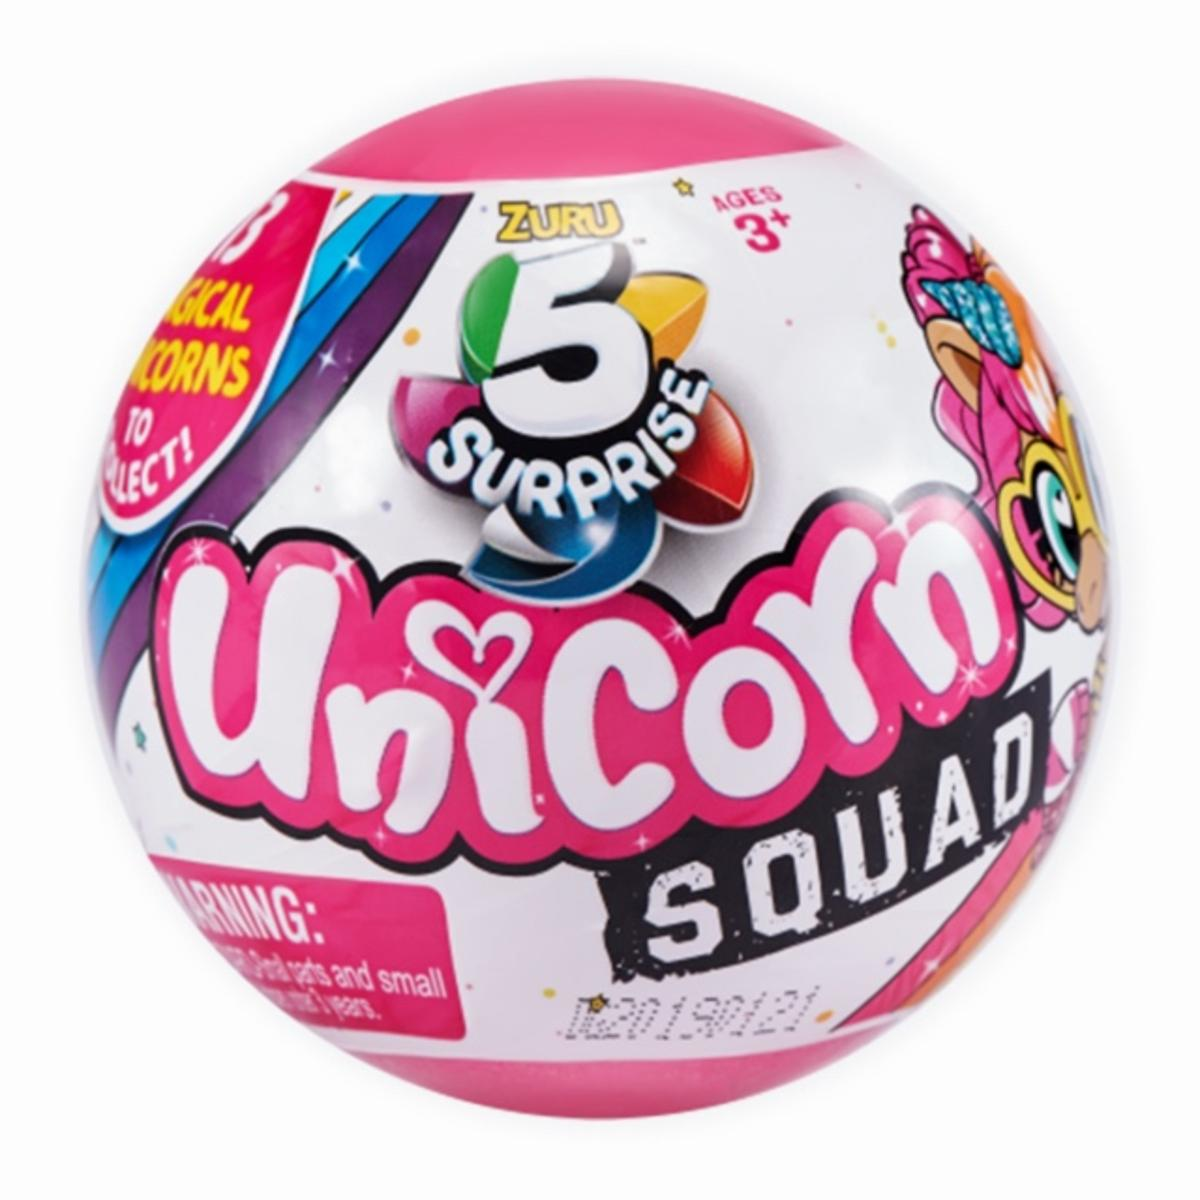 Zuru 5 Surprise Unicorn Squad Collectable